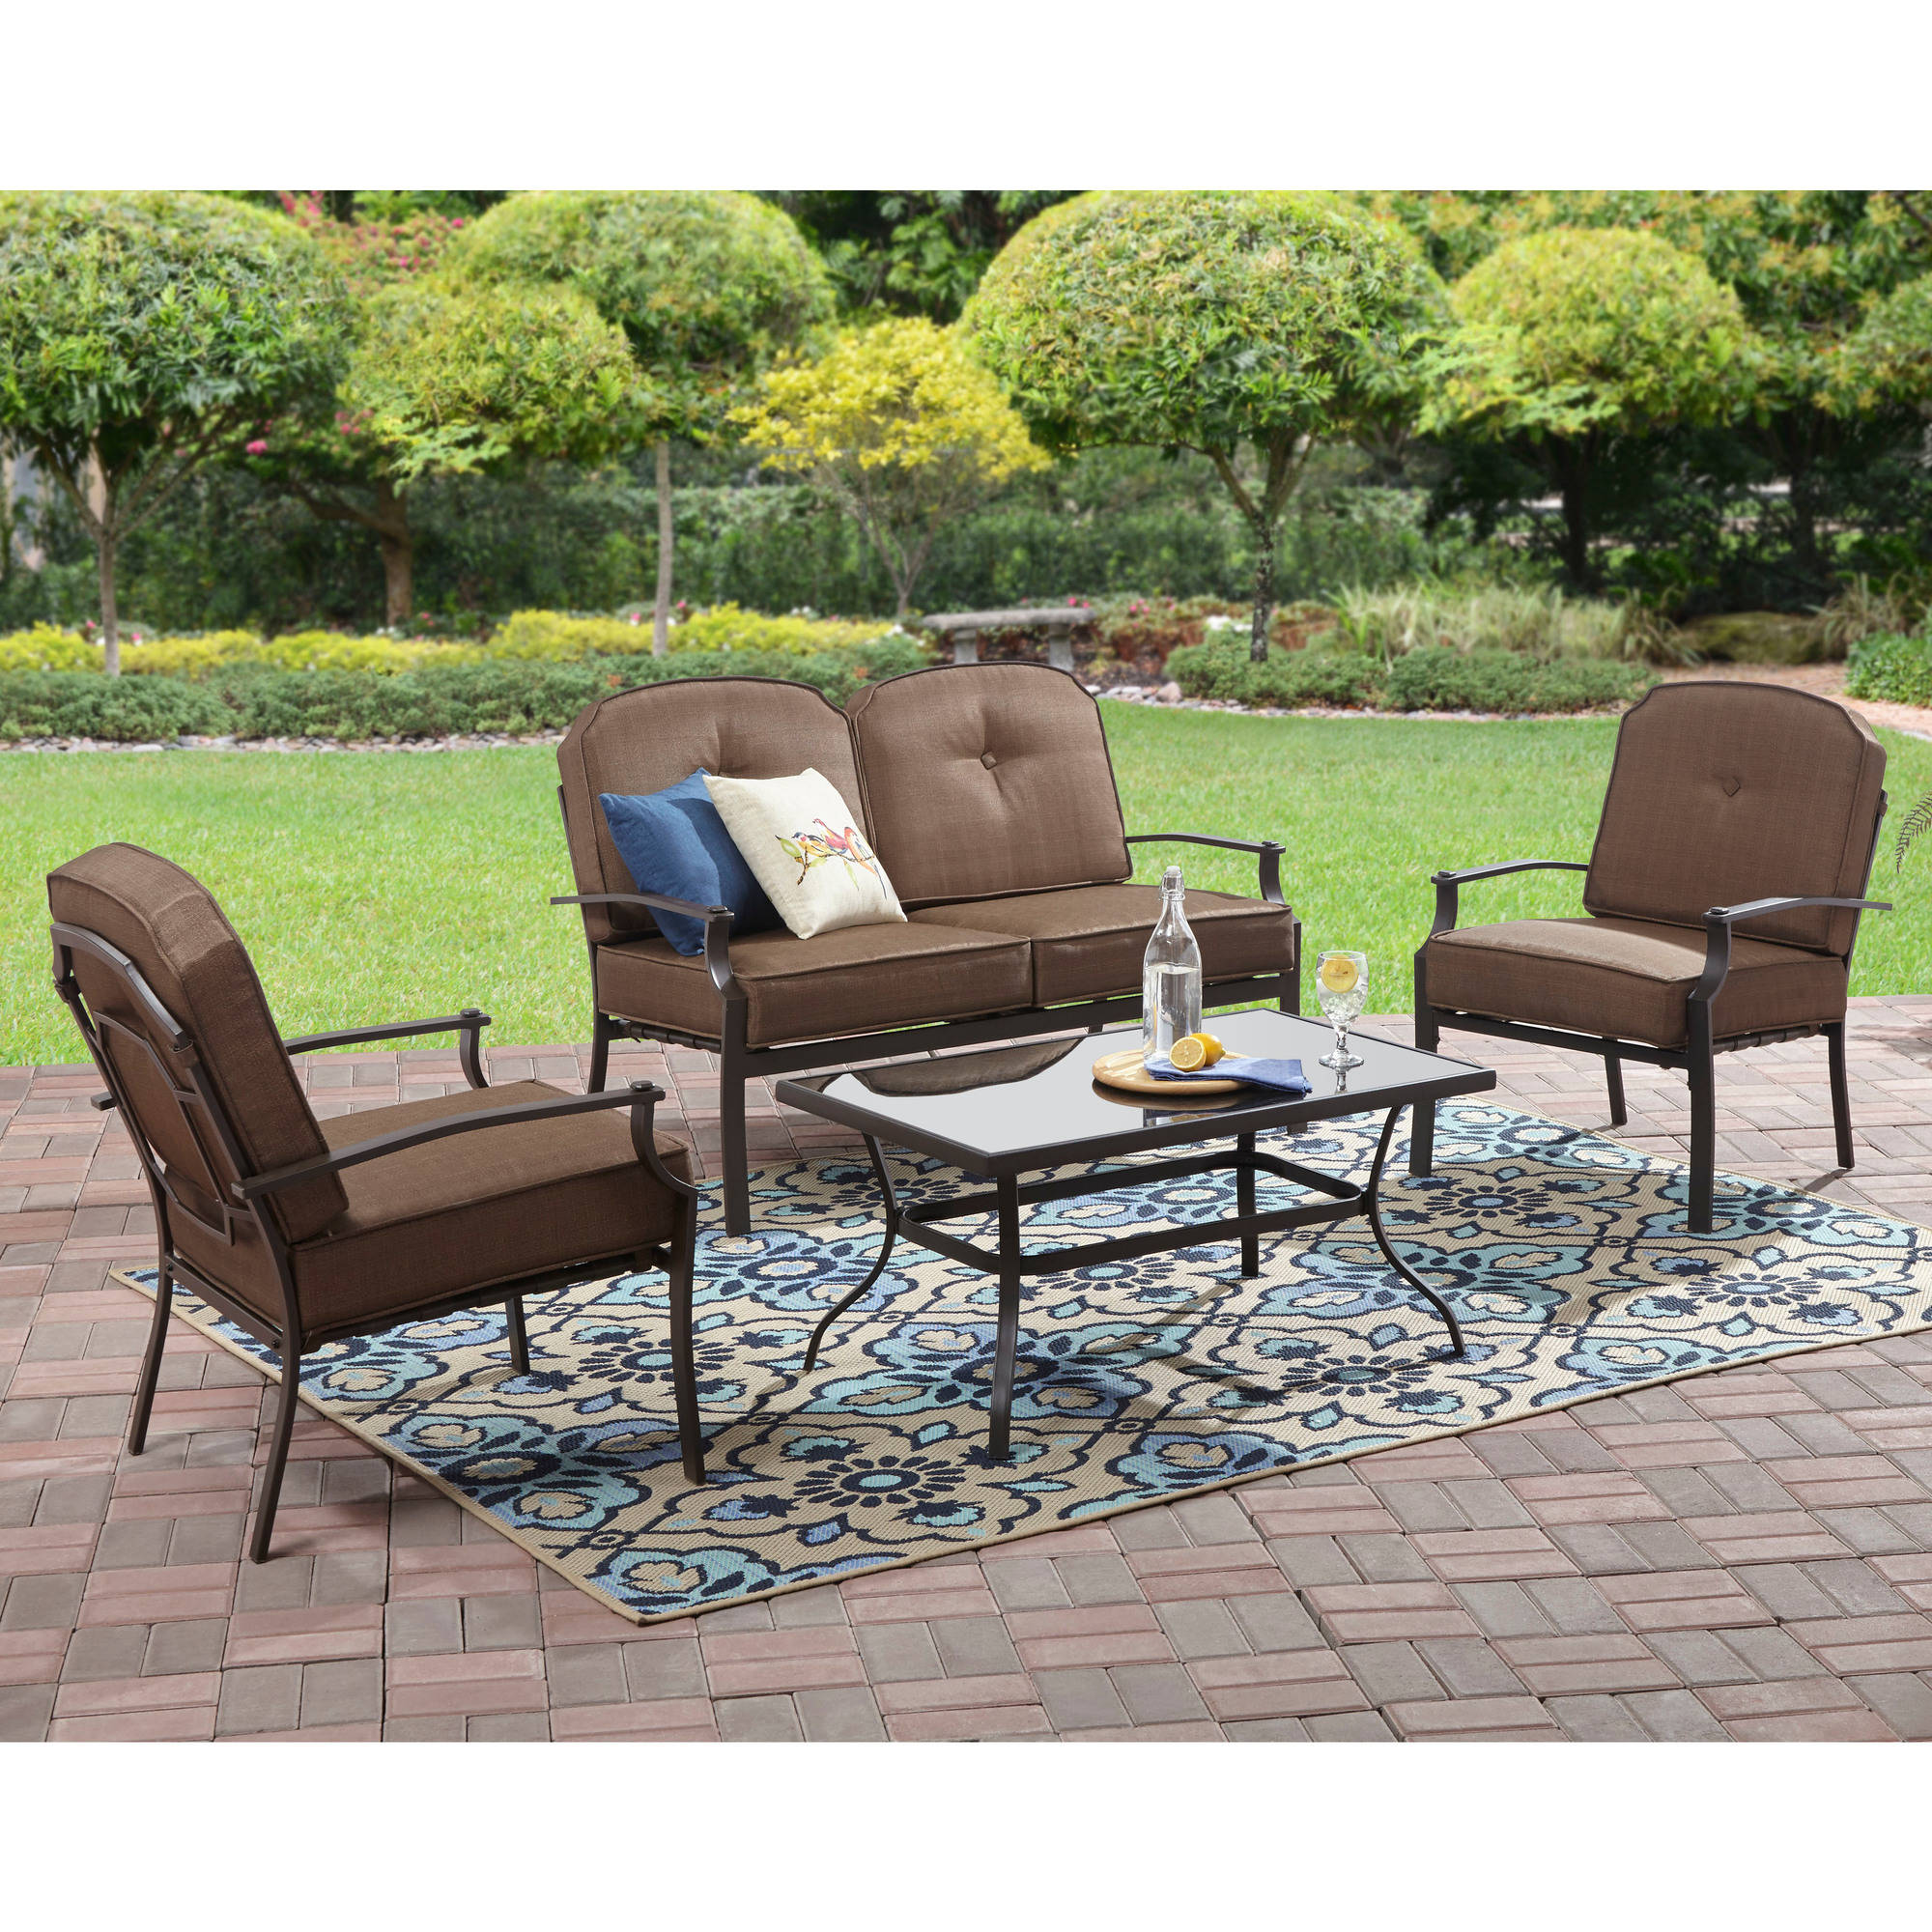 Mainstays Wentworth 4-Piece Metal Patio Furniture Conversation Set